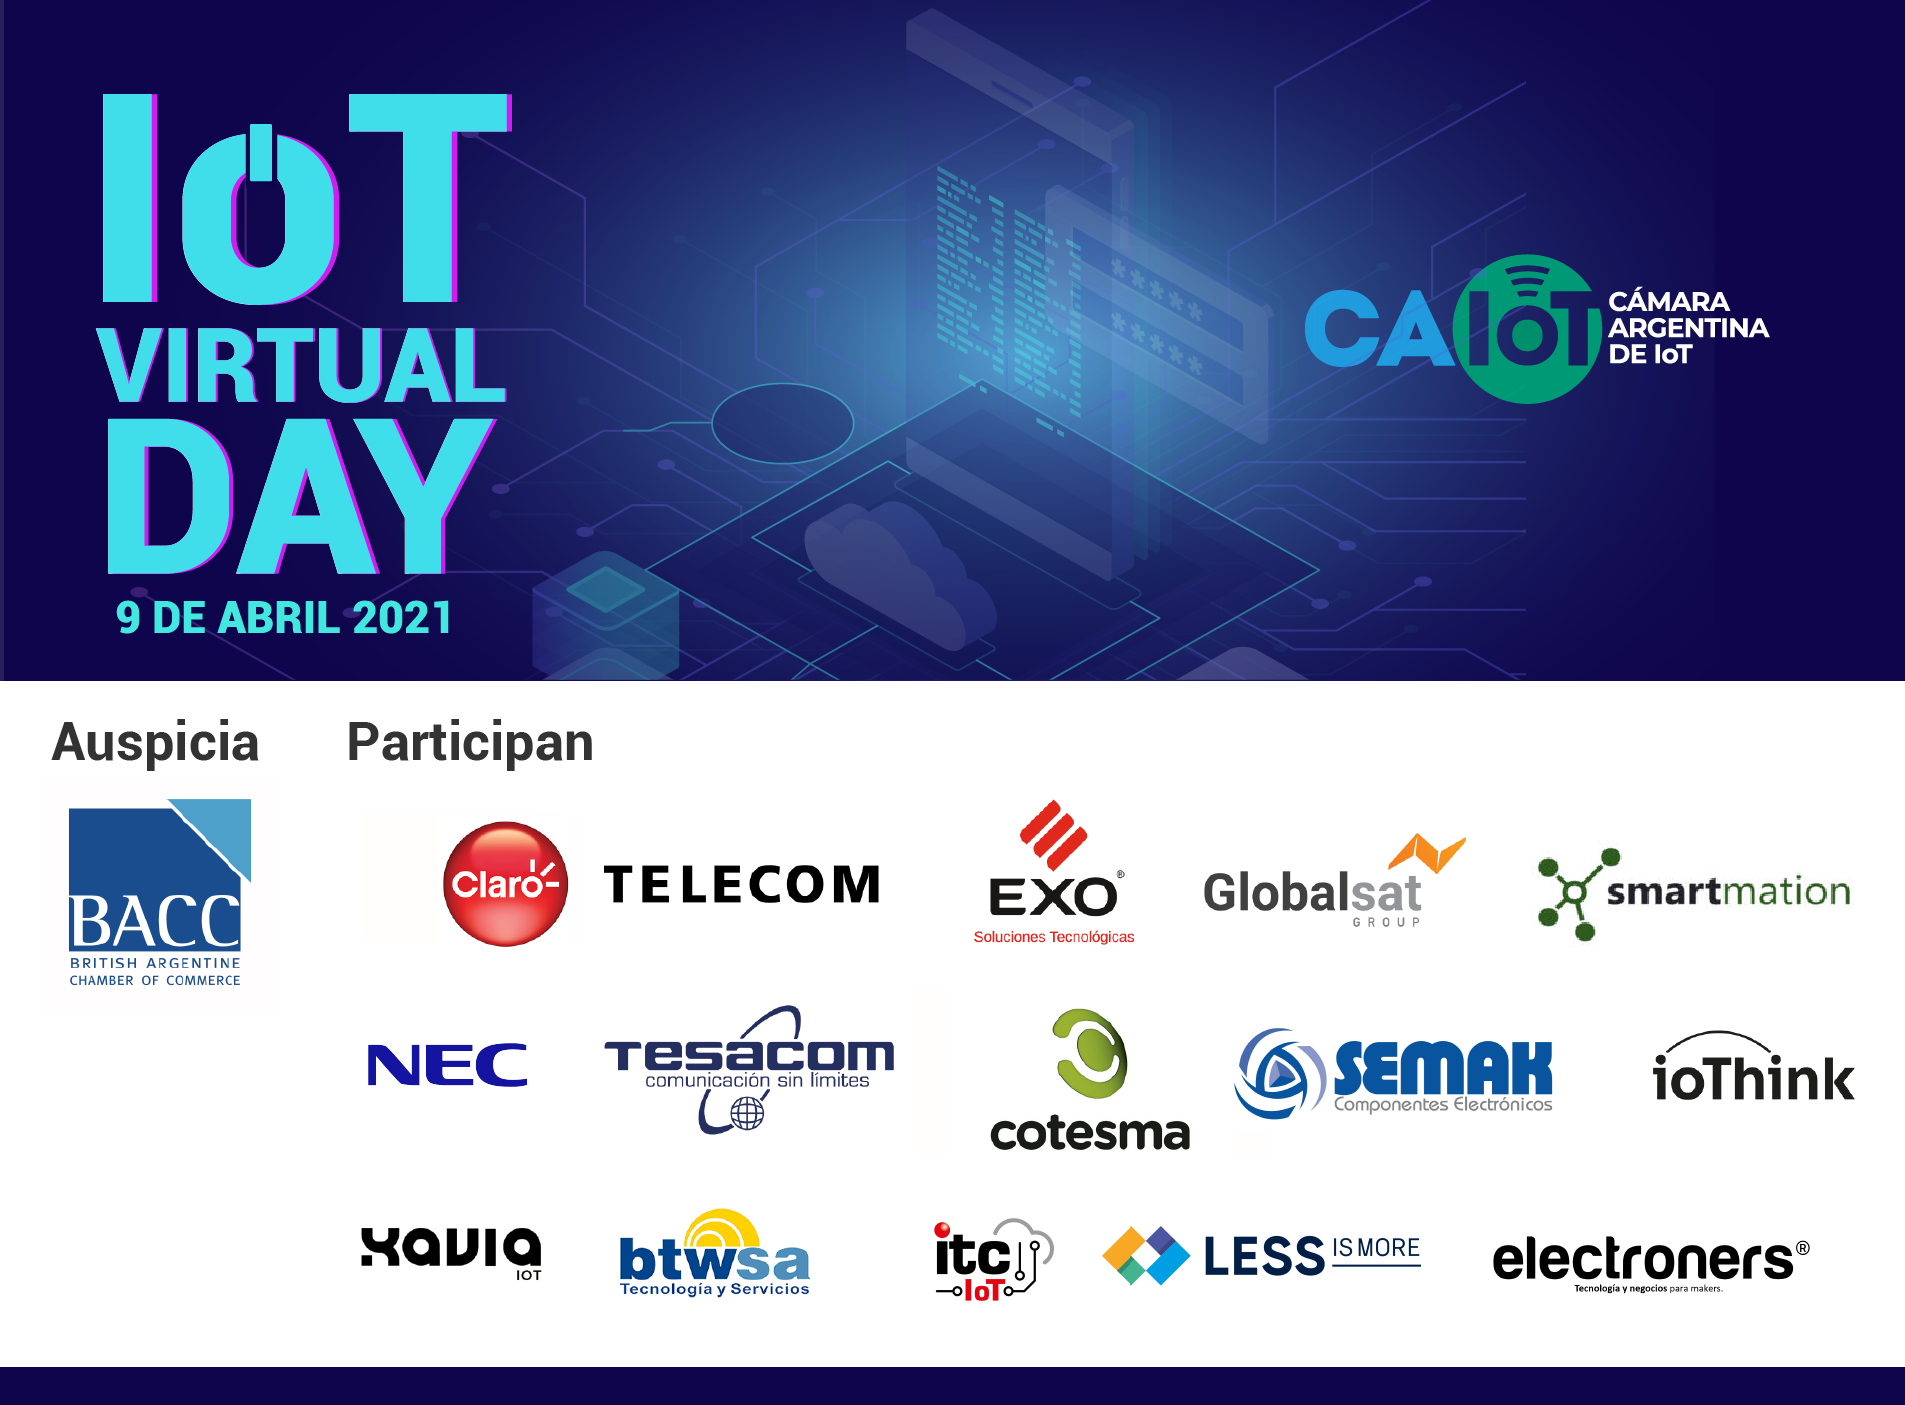 Gran éxito del IoT Virtual Day 2021